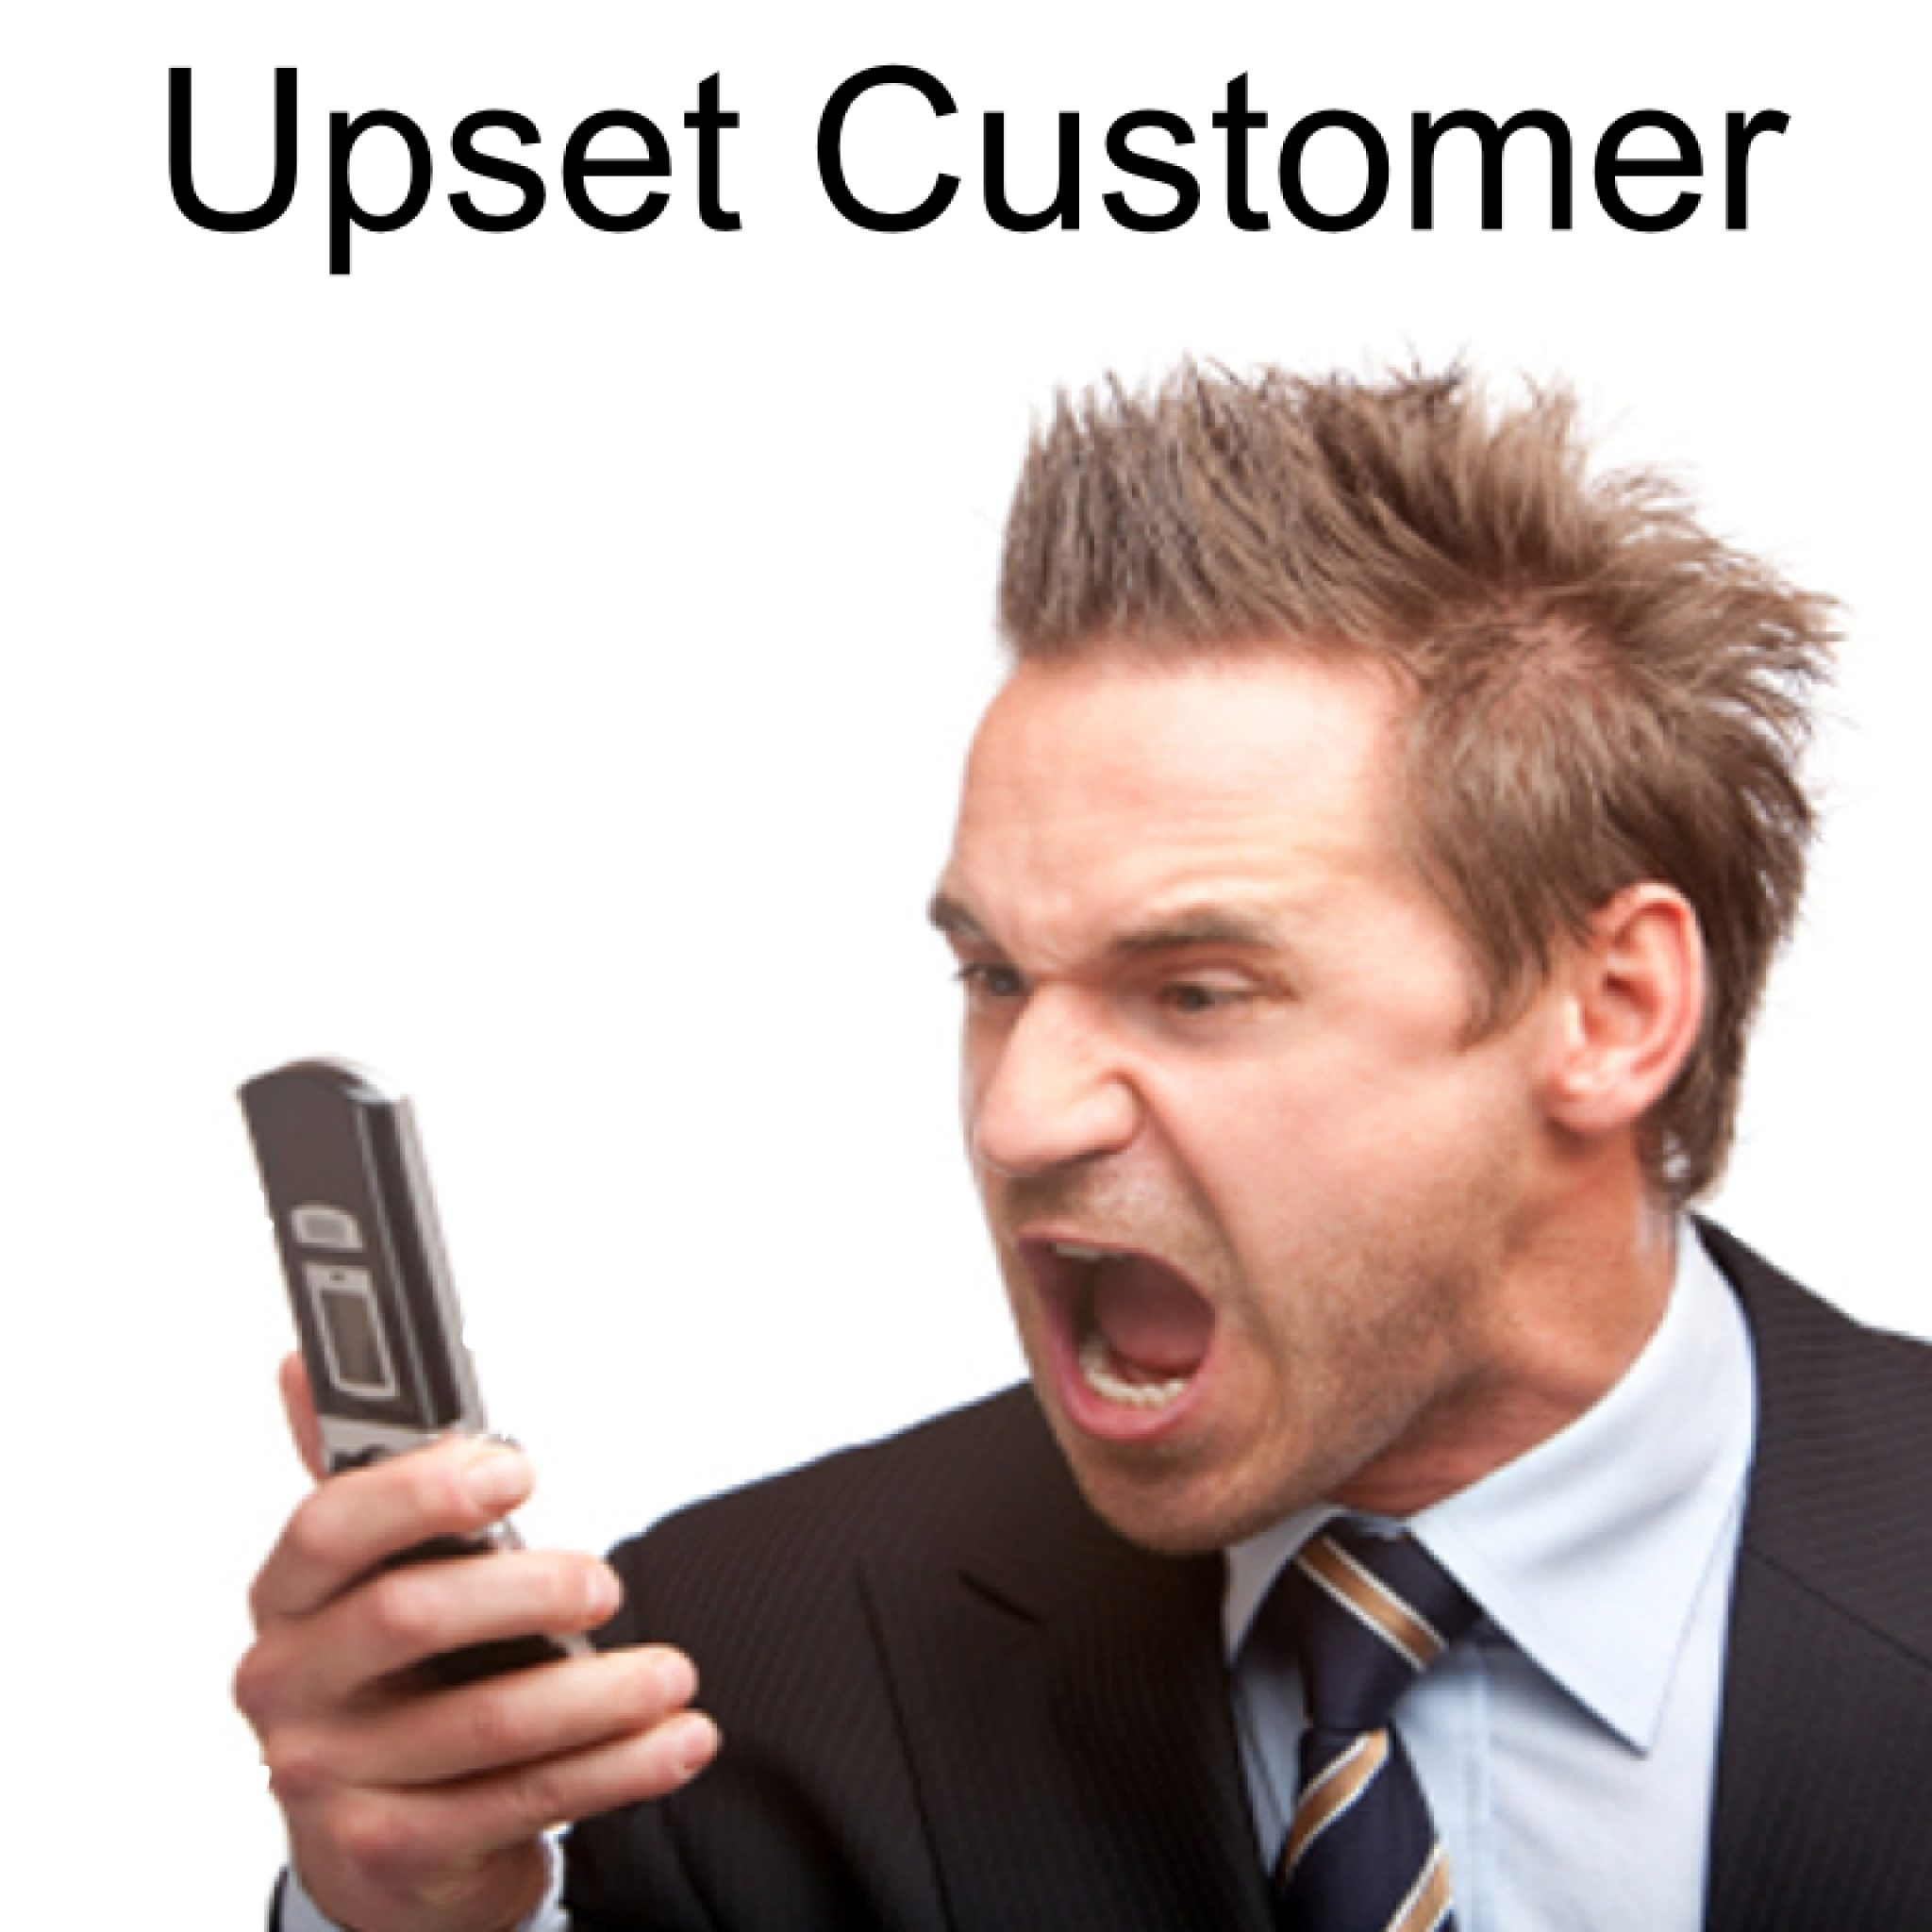 Winning over upset customers